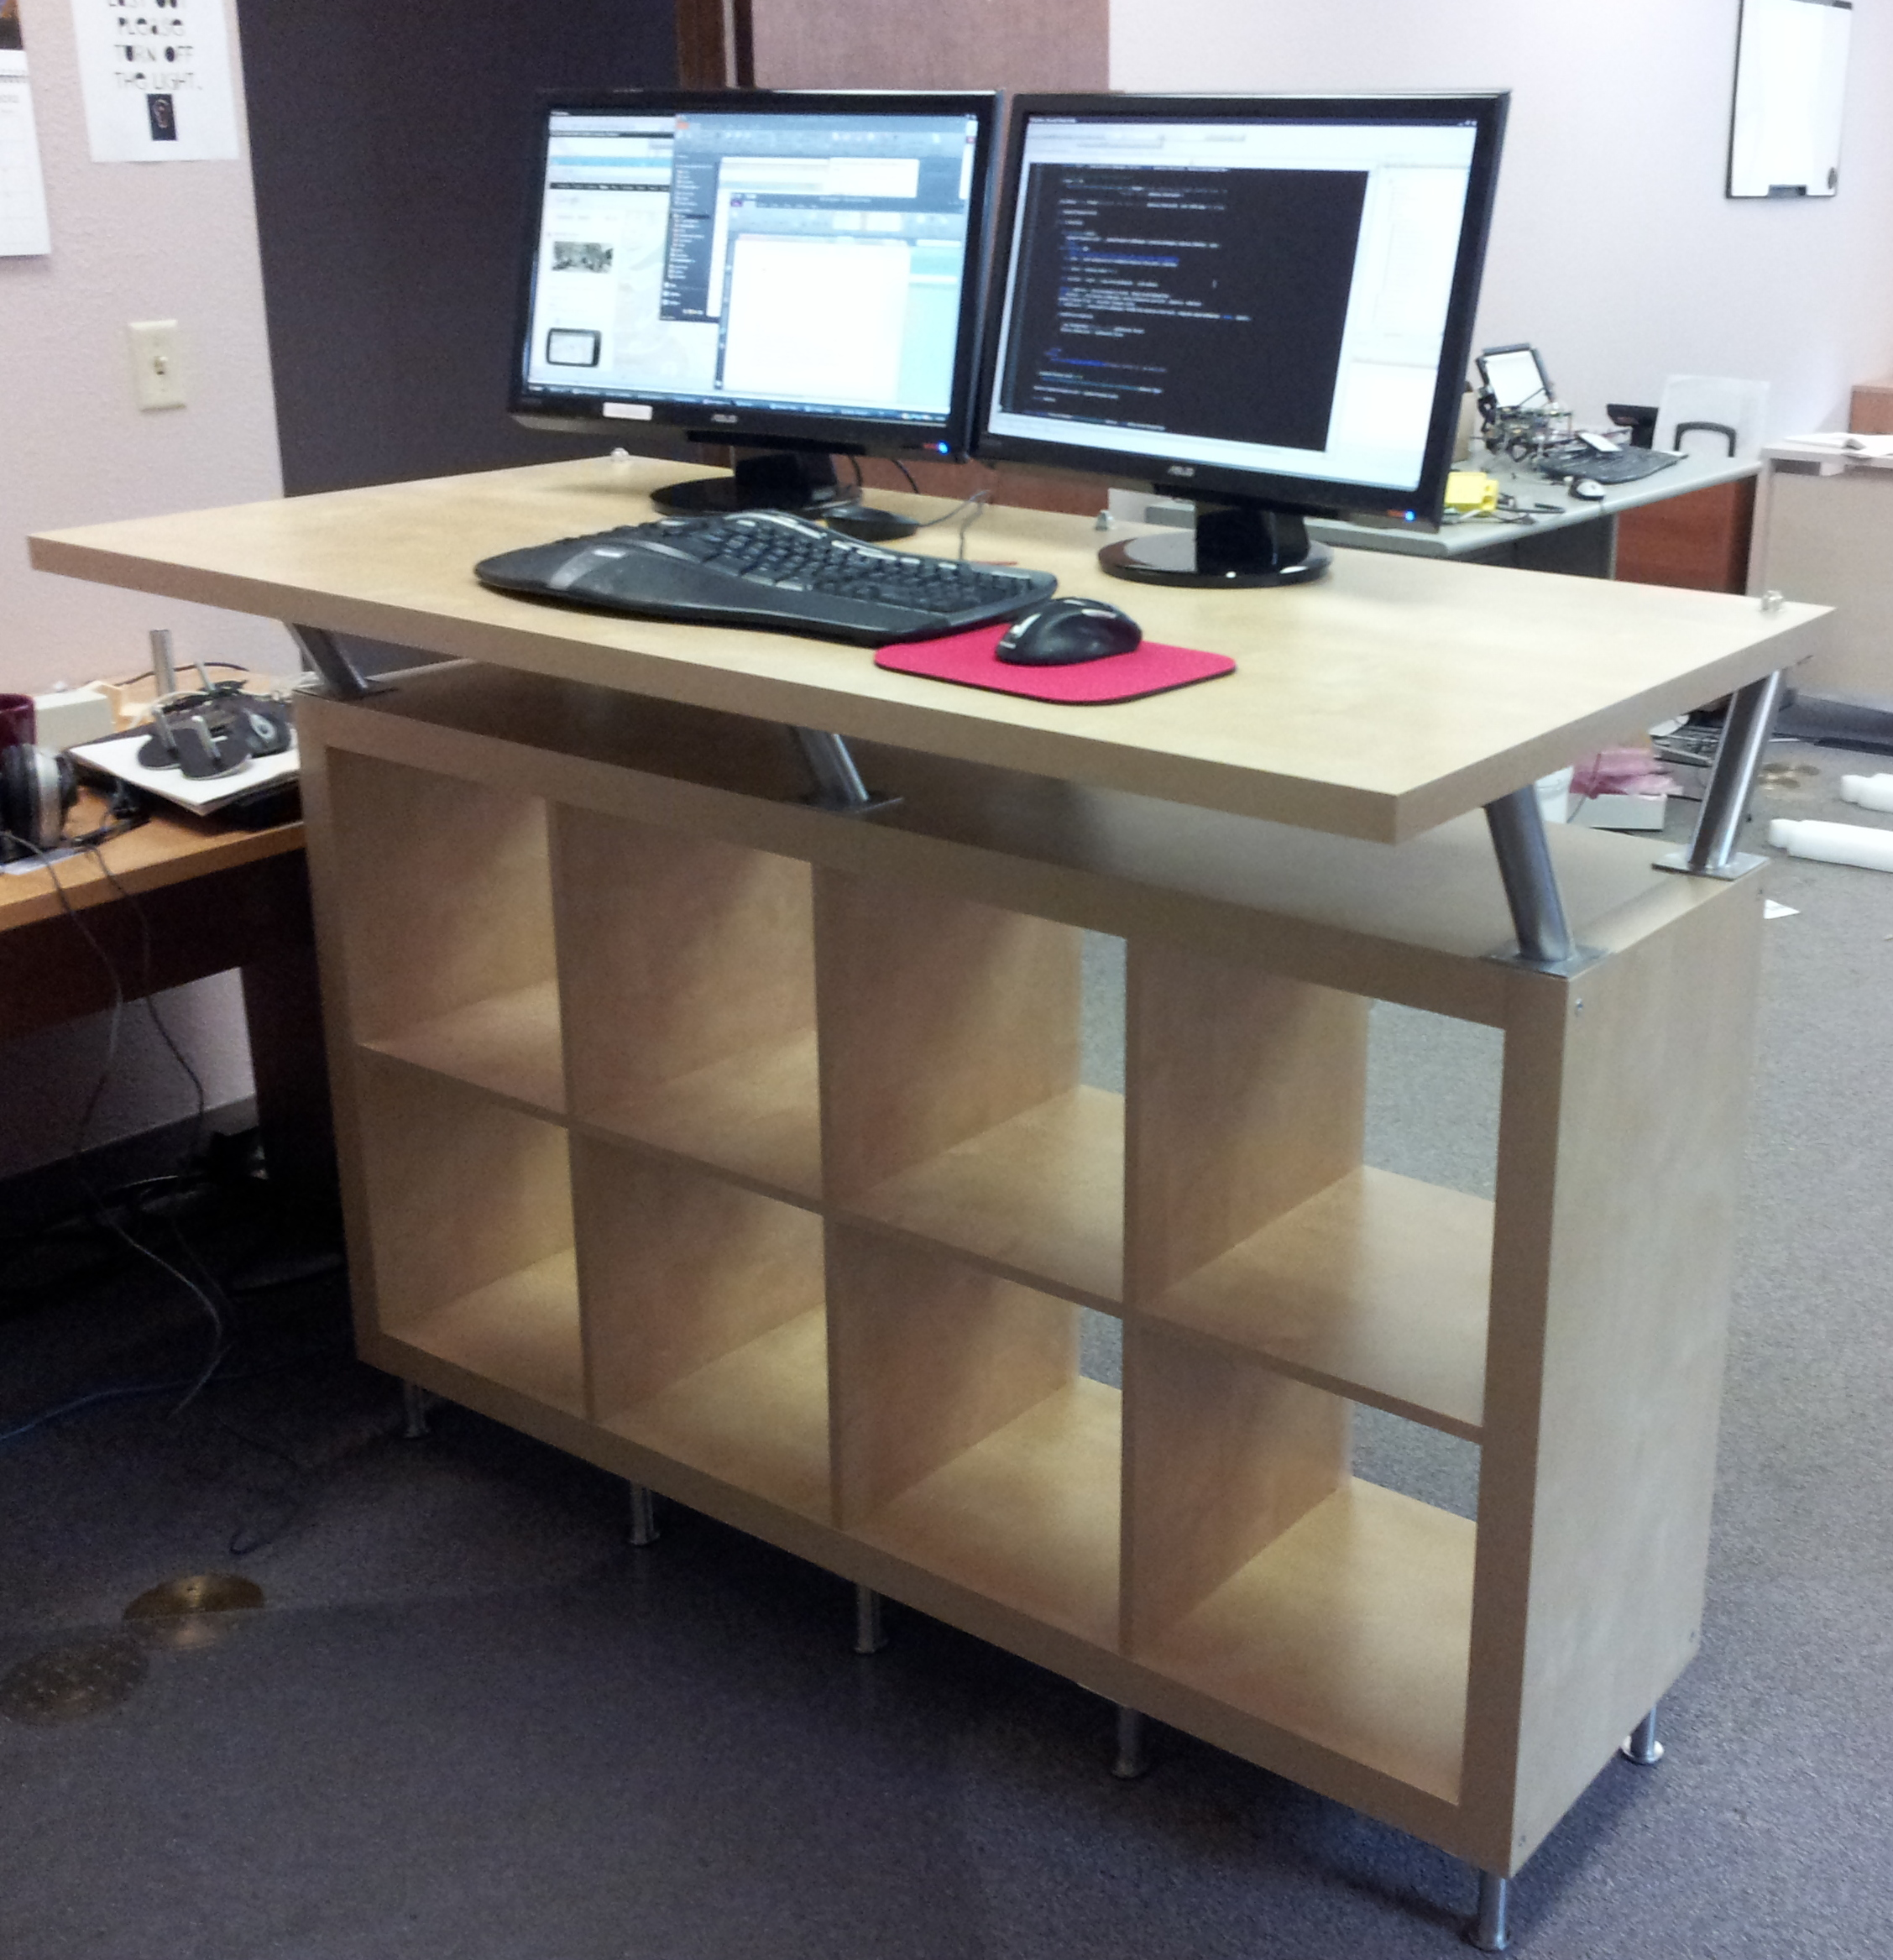 Sophisticated Ikea Stand Up Desk Design With Storage And Simple Creamy Top Computer Sets In